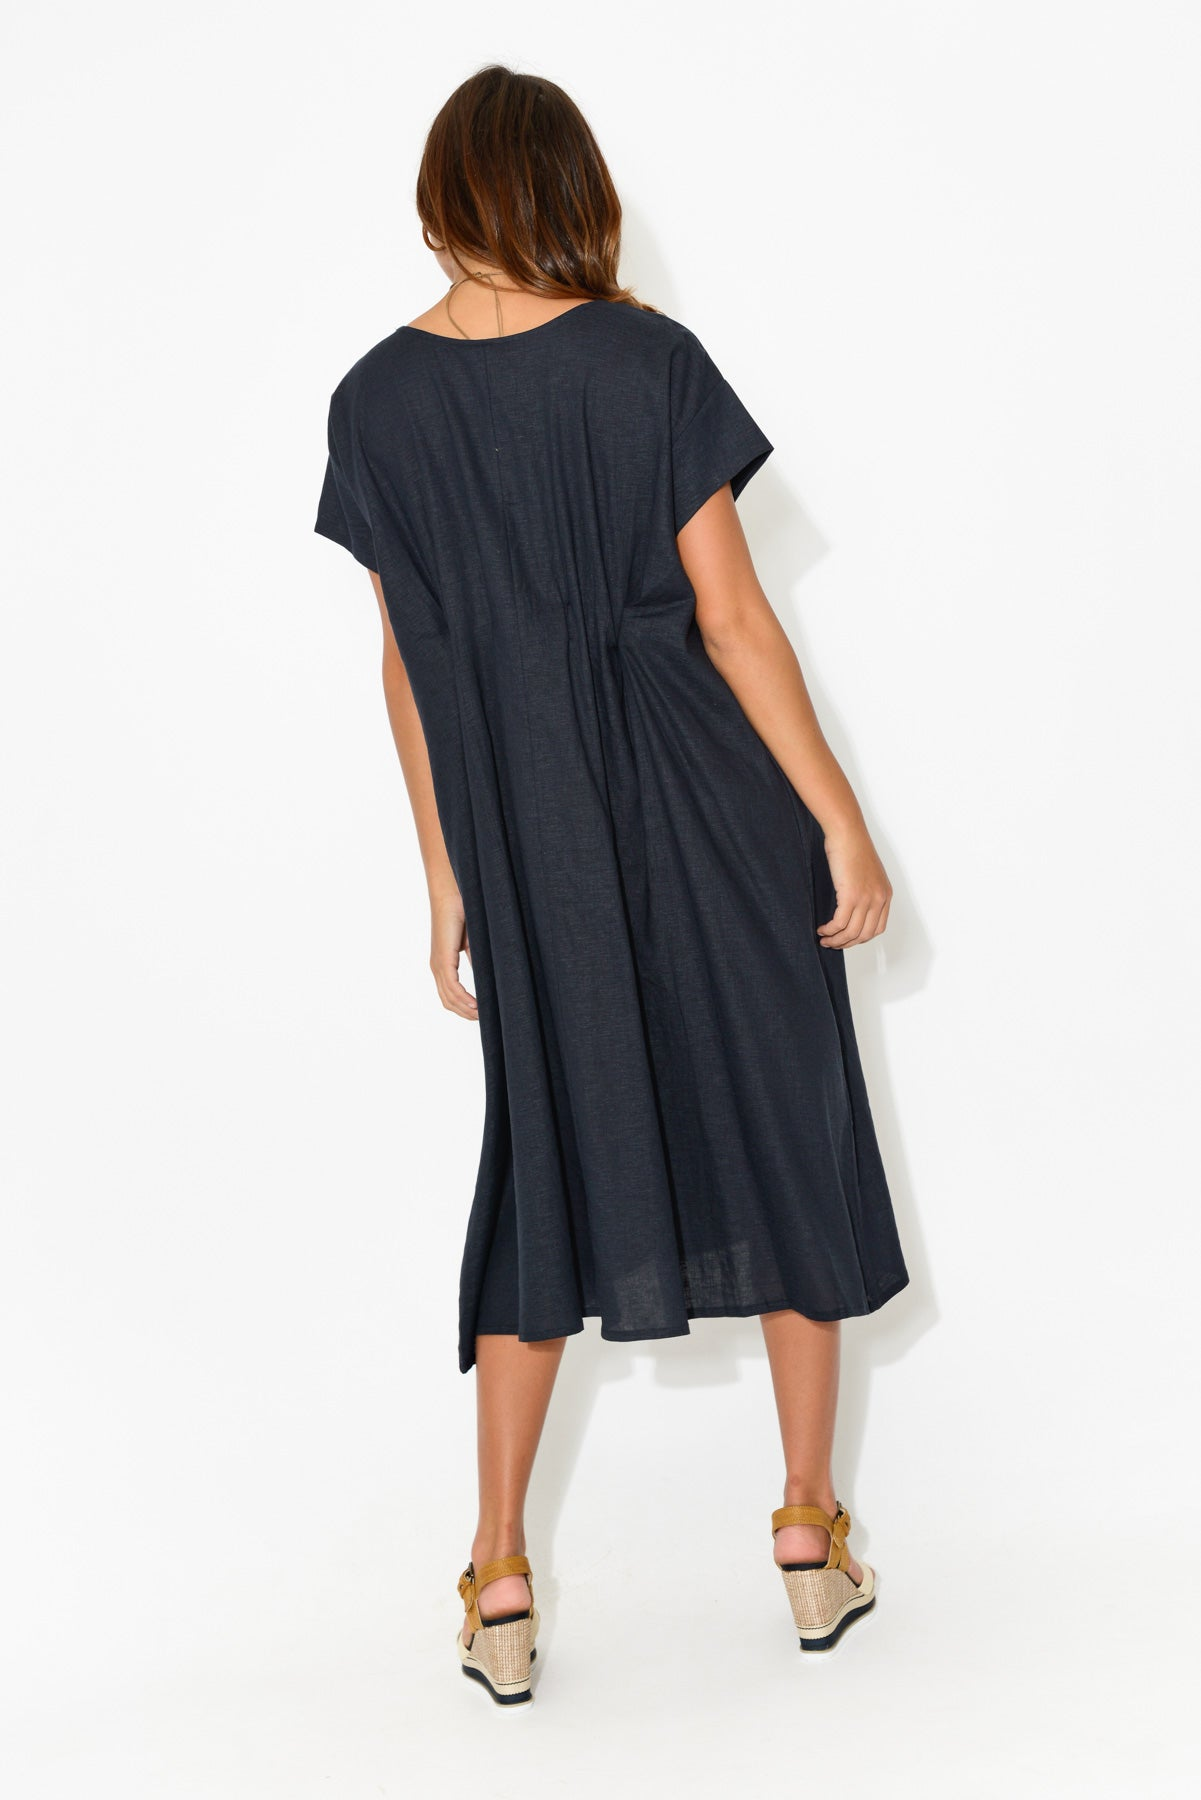 Nova Navy Gather Back Dress - Blue Bungalow